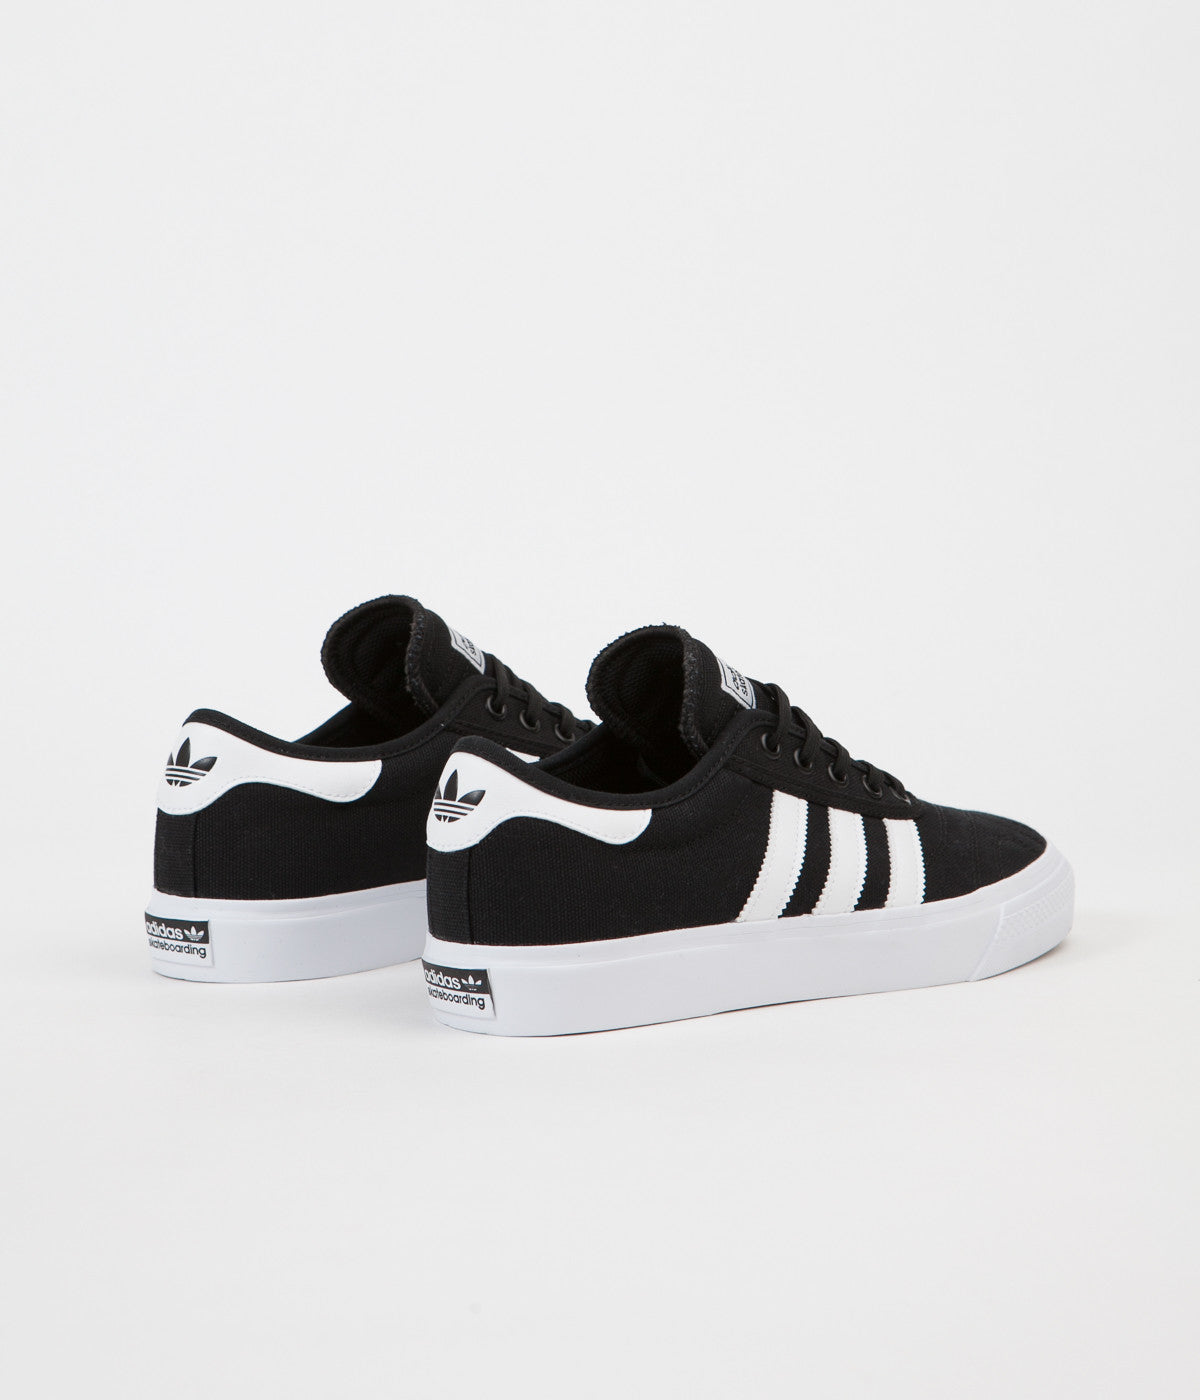 Adidas Adi-Ease Premiere Shoes - Core Black / White / Gum4